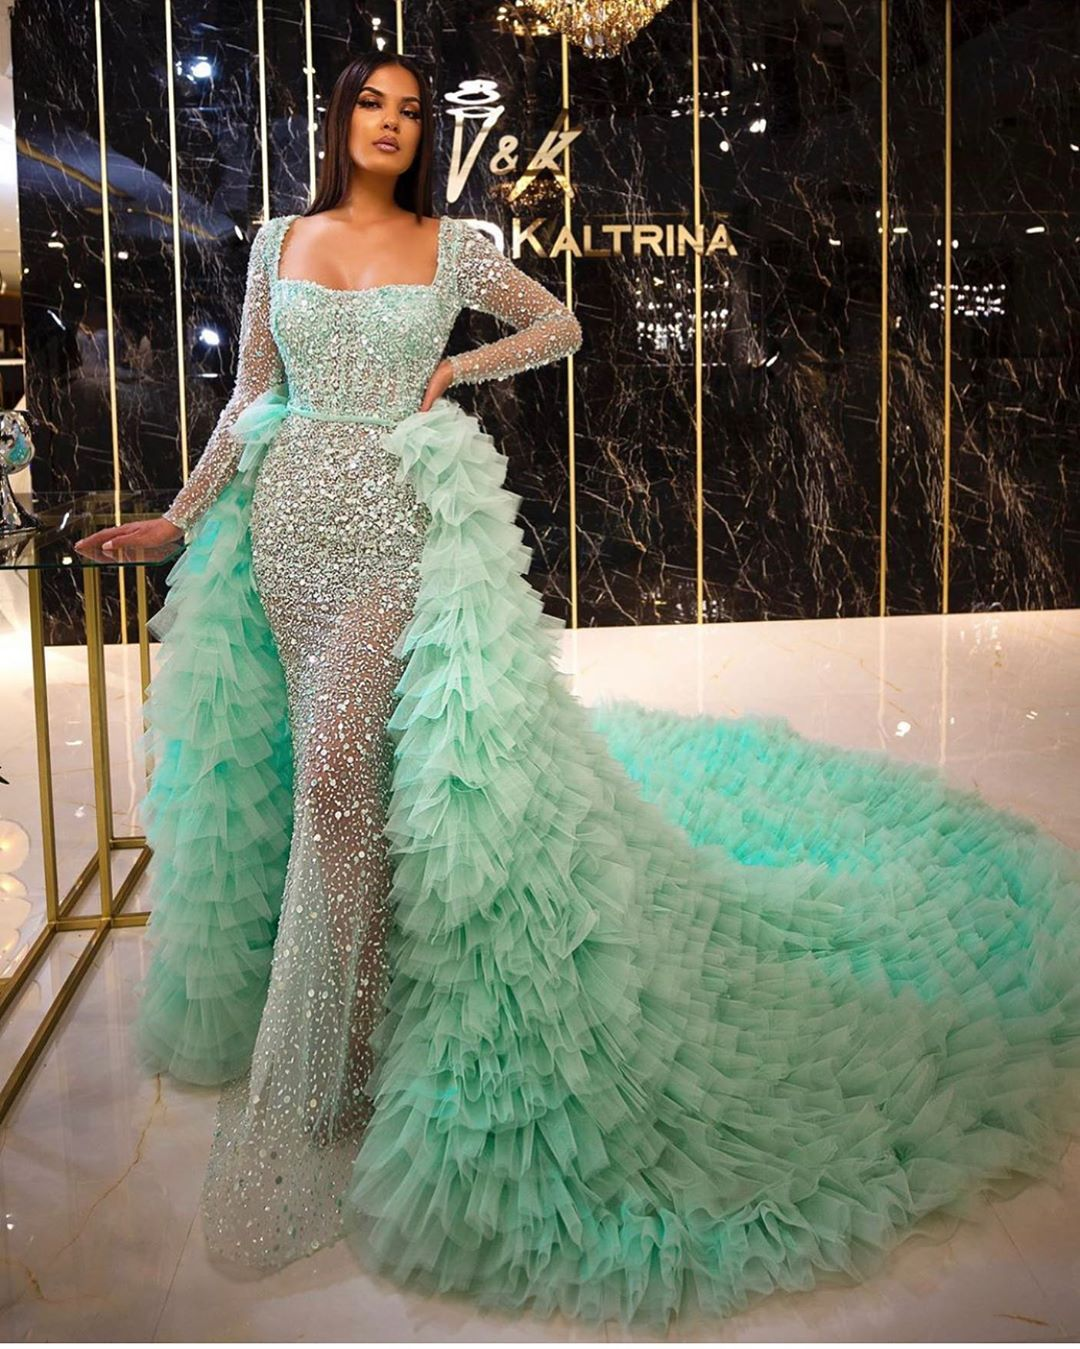 Pastel Green Sequin Gown with Ruffle Train.